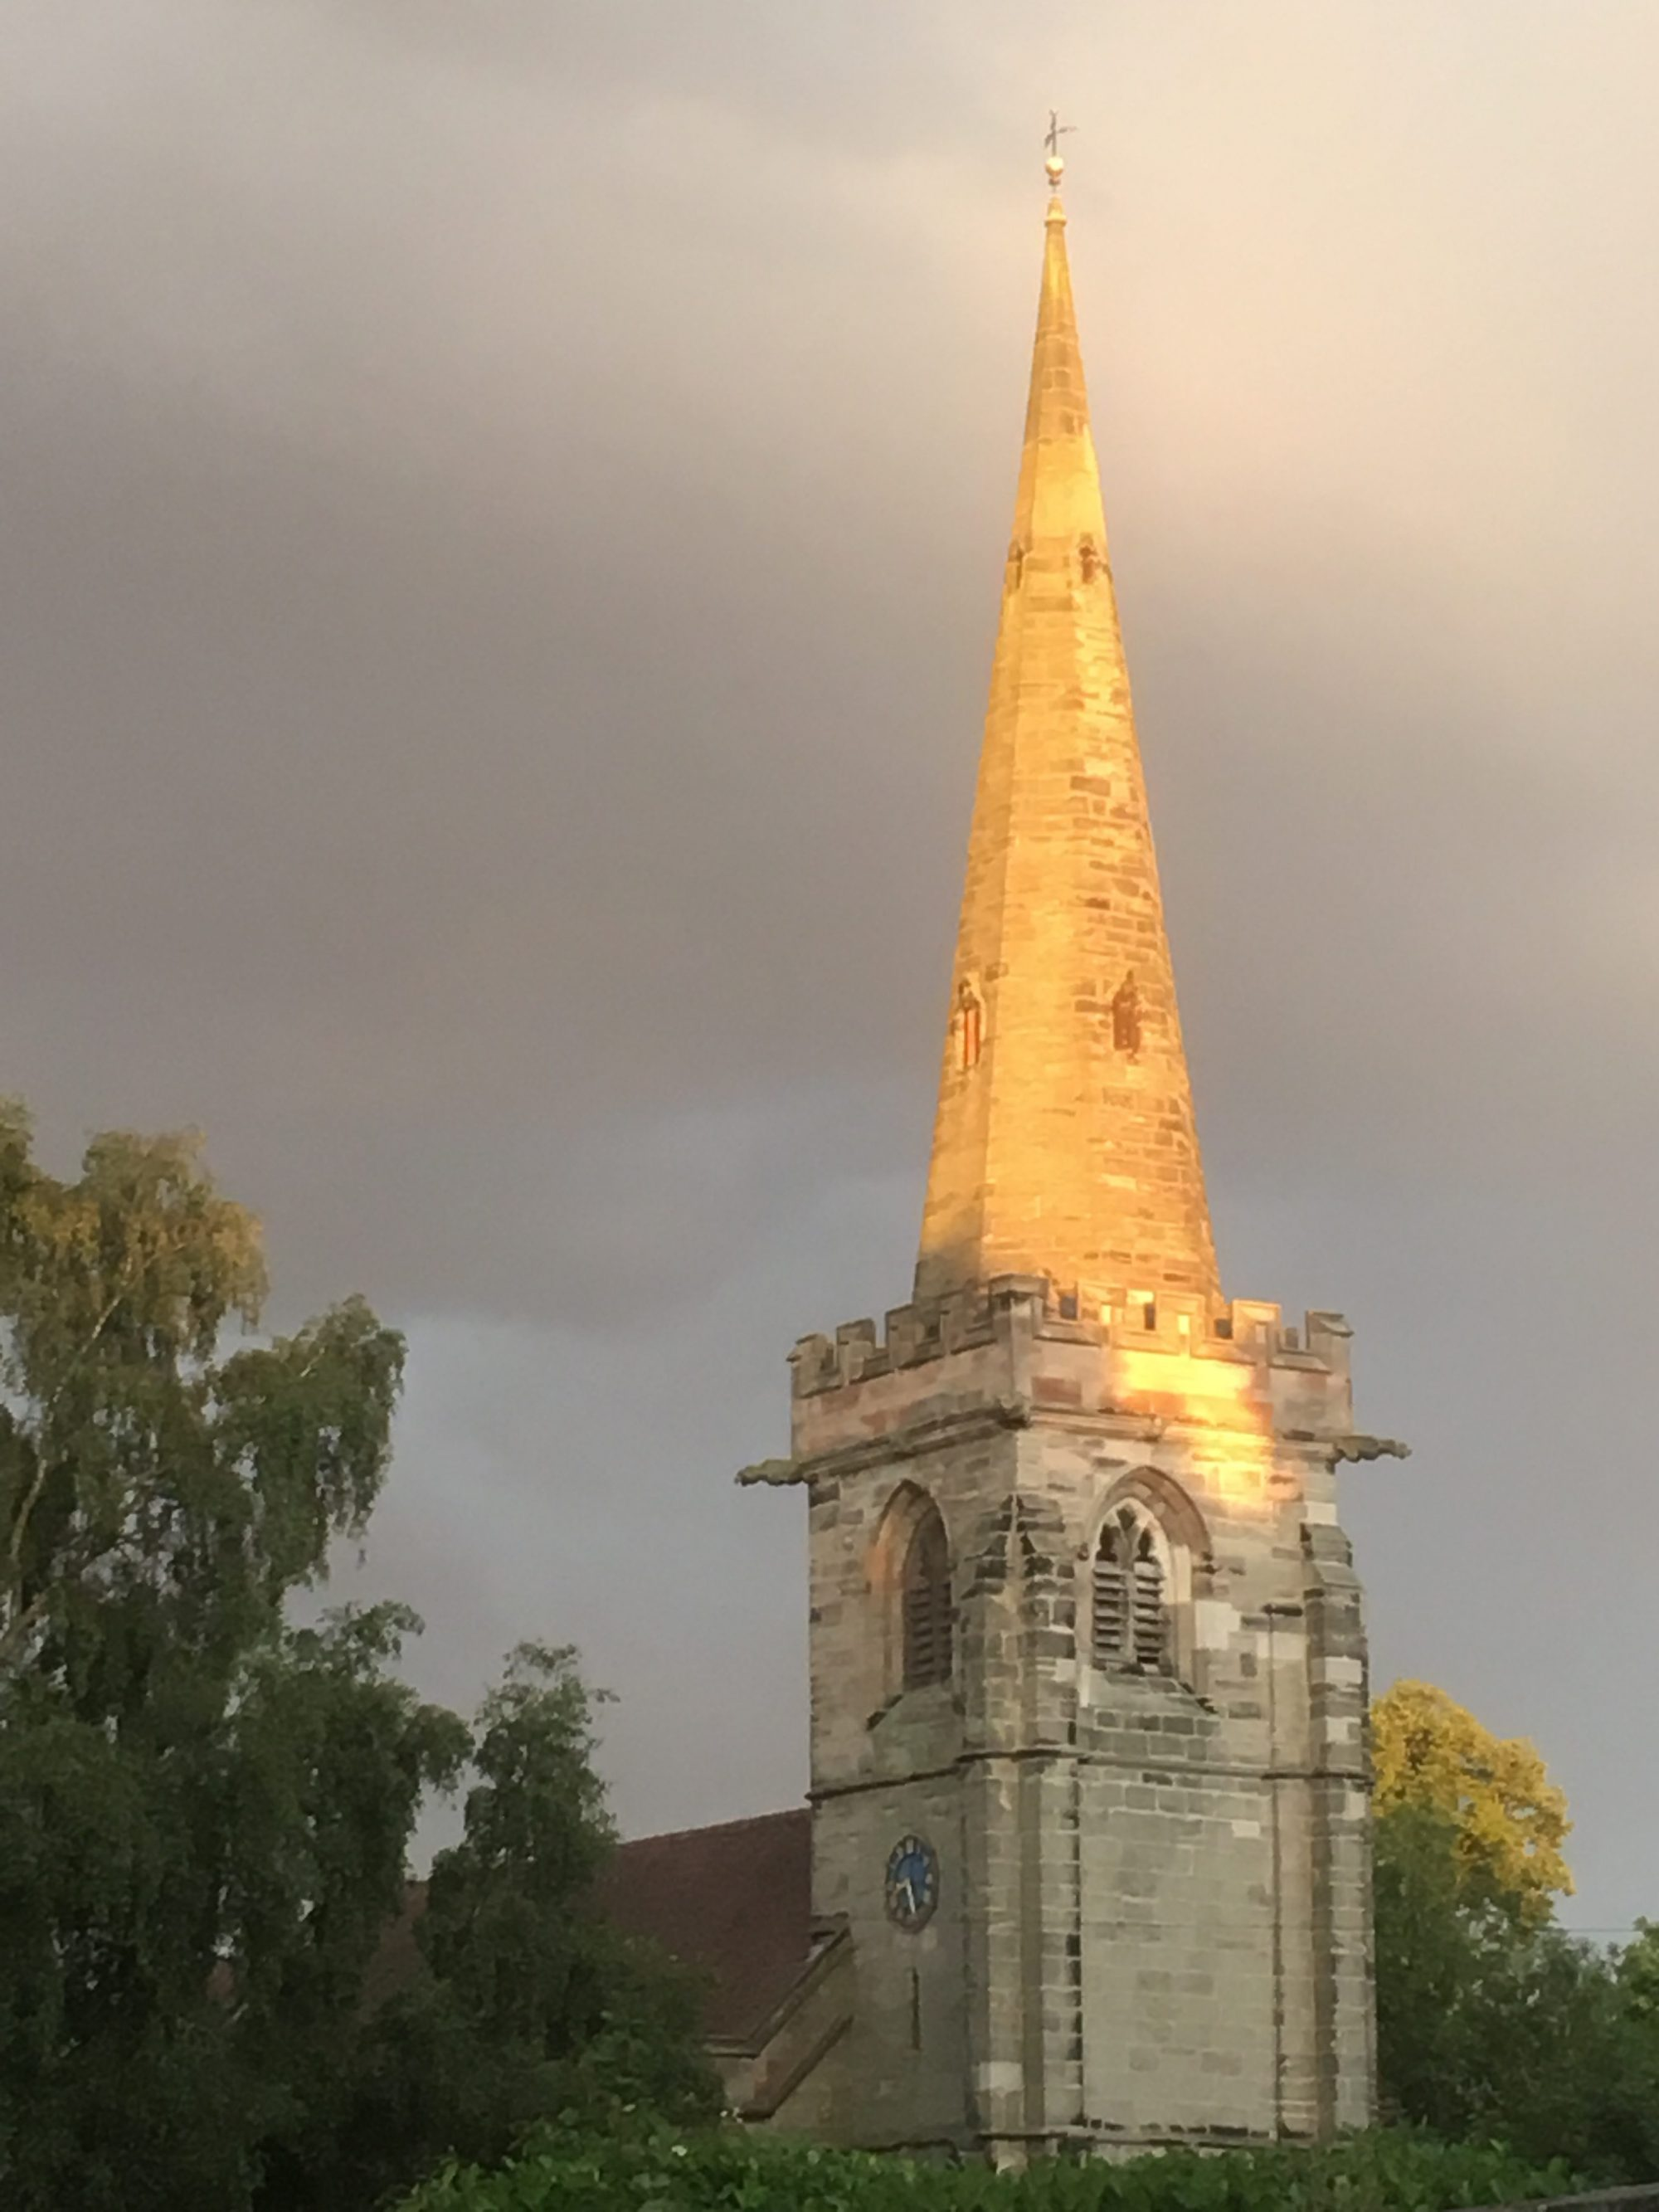 Welcome to Rolleston on Dove Parish Council